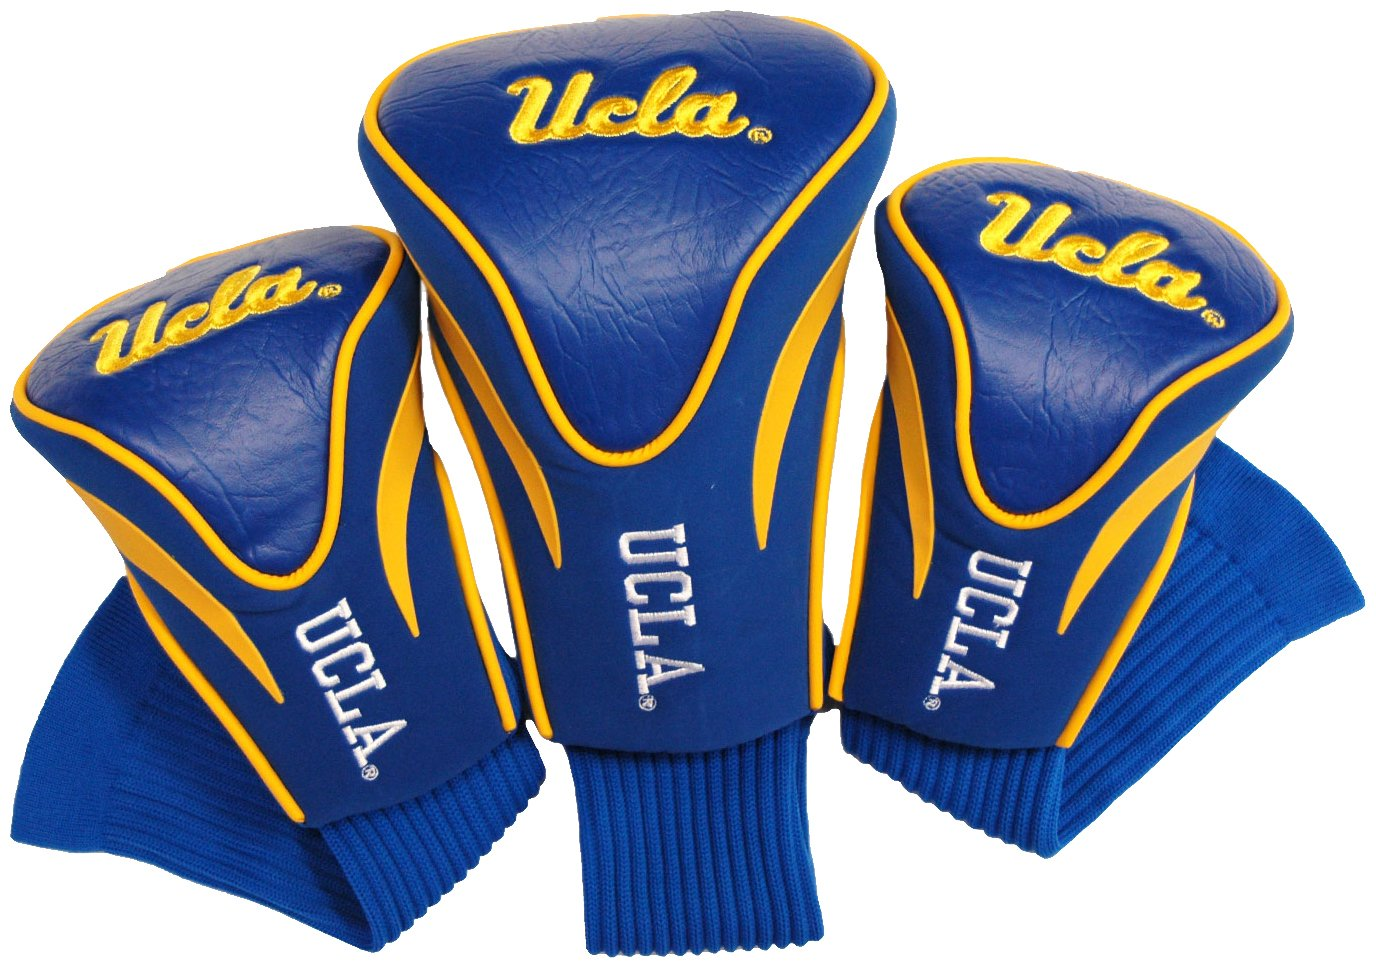 Team Golf NCAA Contour Golf Club Headcovers (3 Count), Numbered 1, 3, & X, Fits Oversized Drivers, Utility, Rescue & Fairway Clubs, Velour lined for Extra Club Protection by Team Golf